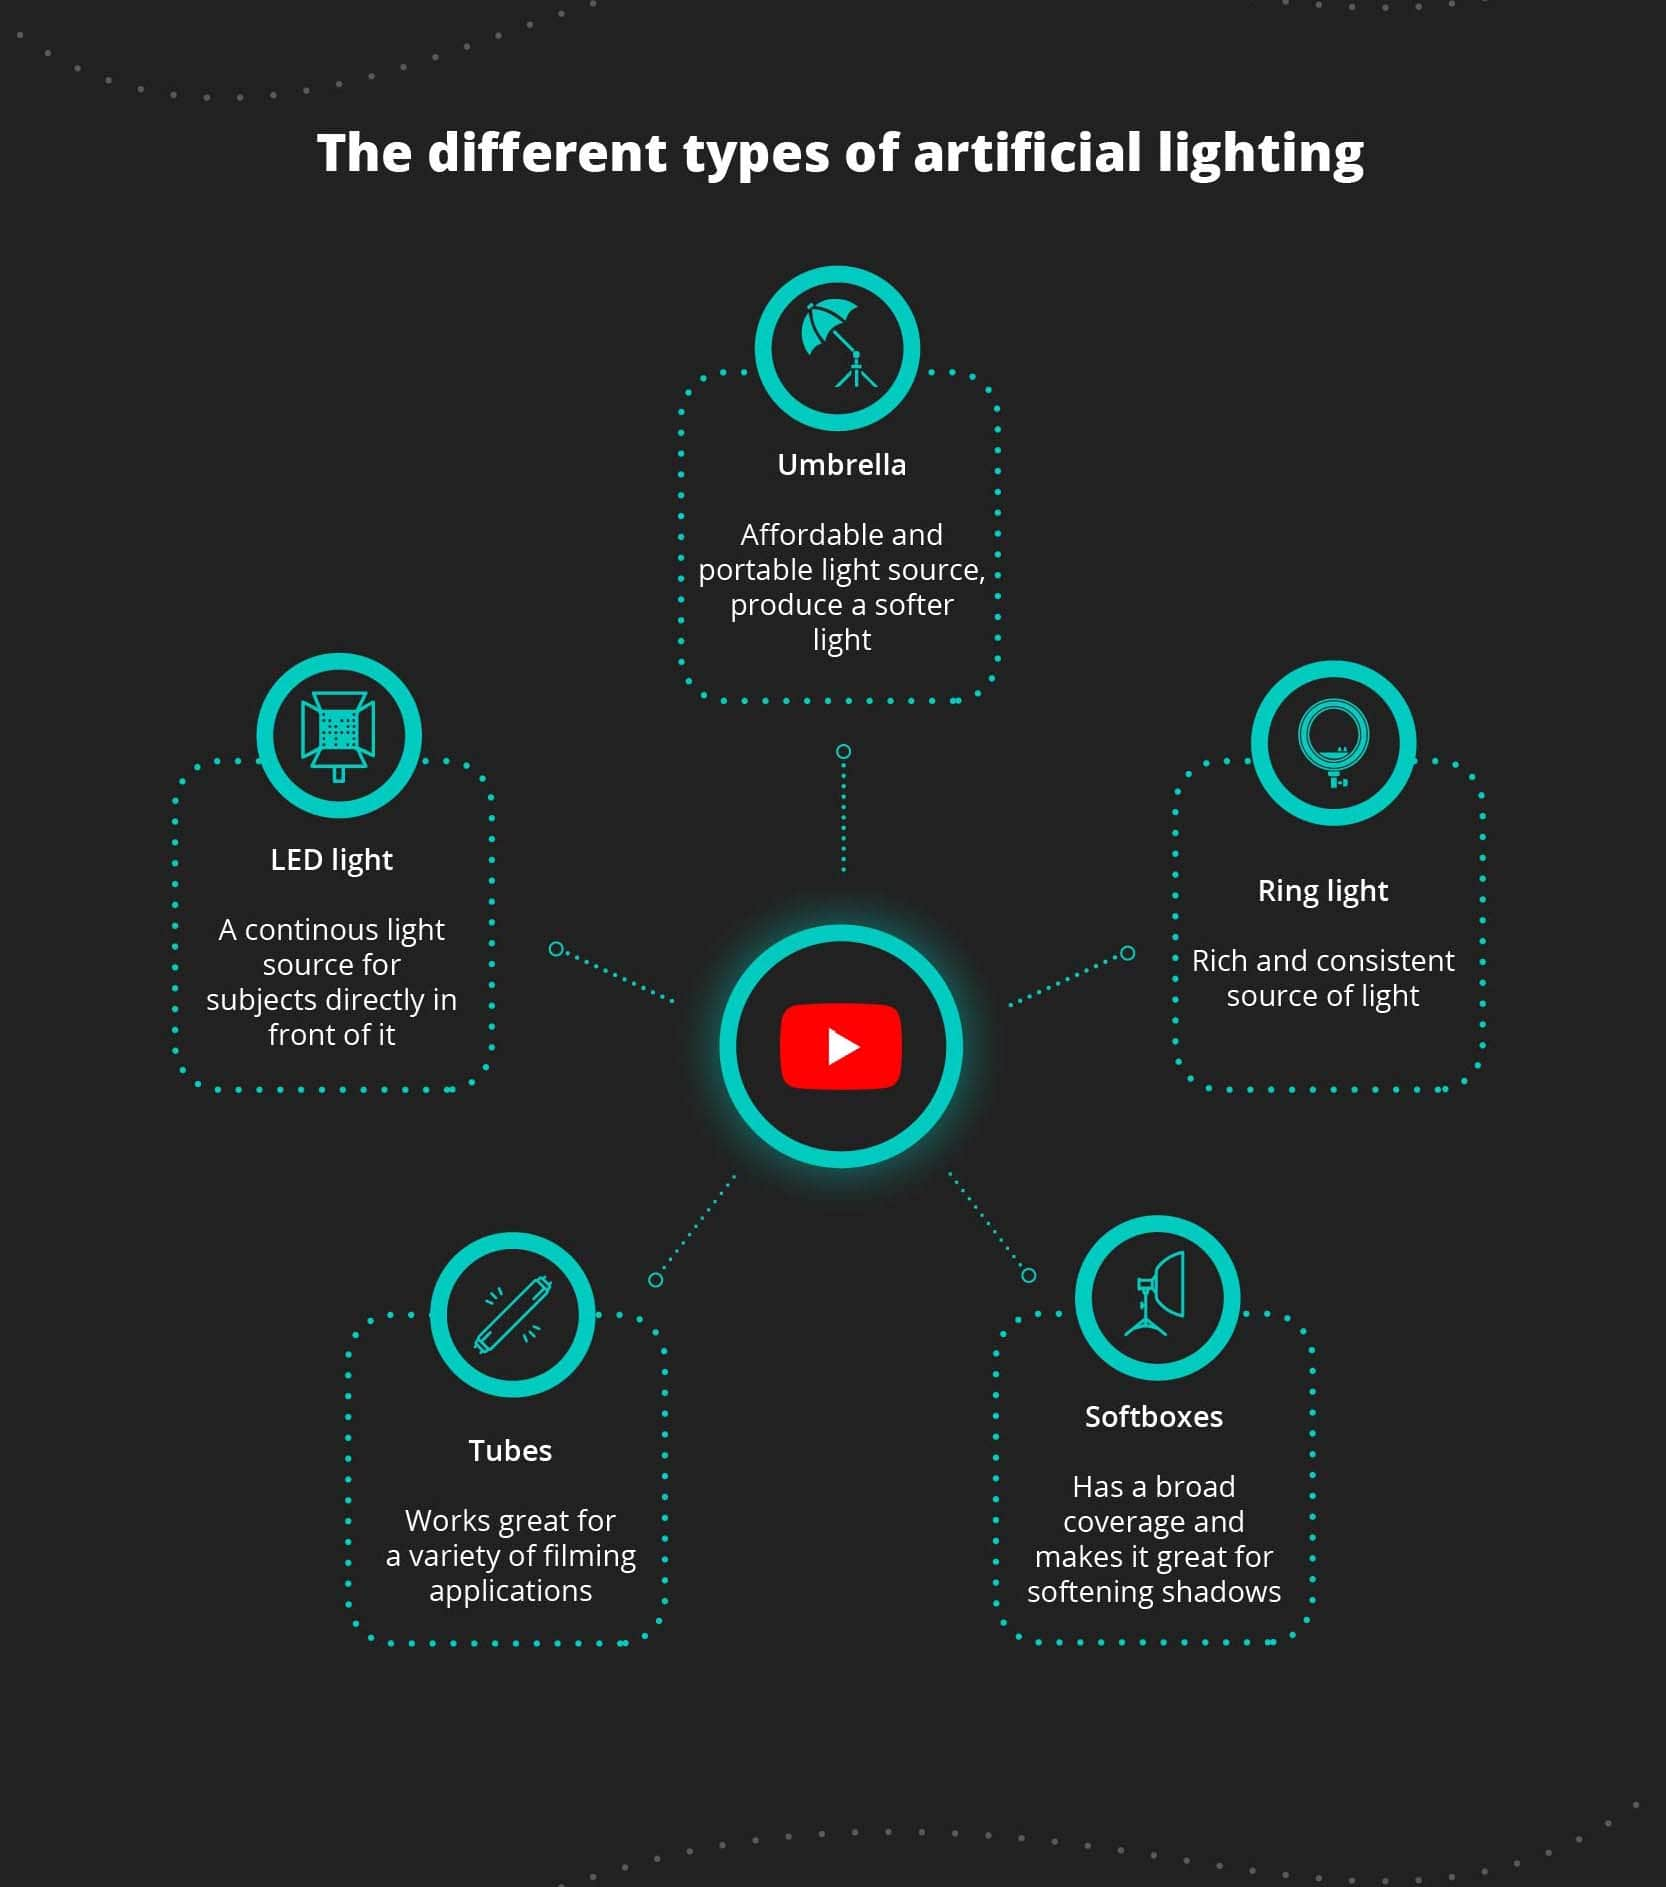 the different types of artificial lighting, different lighting for your YouTube videos